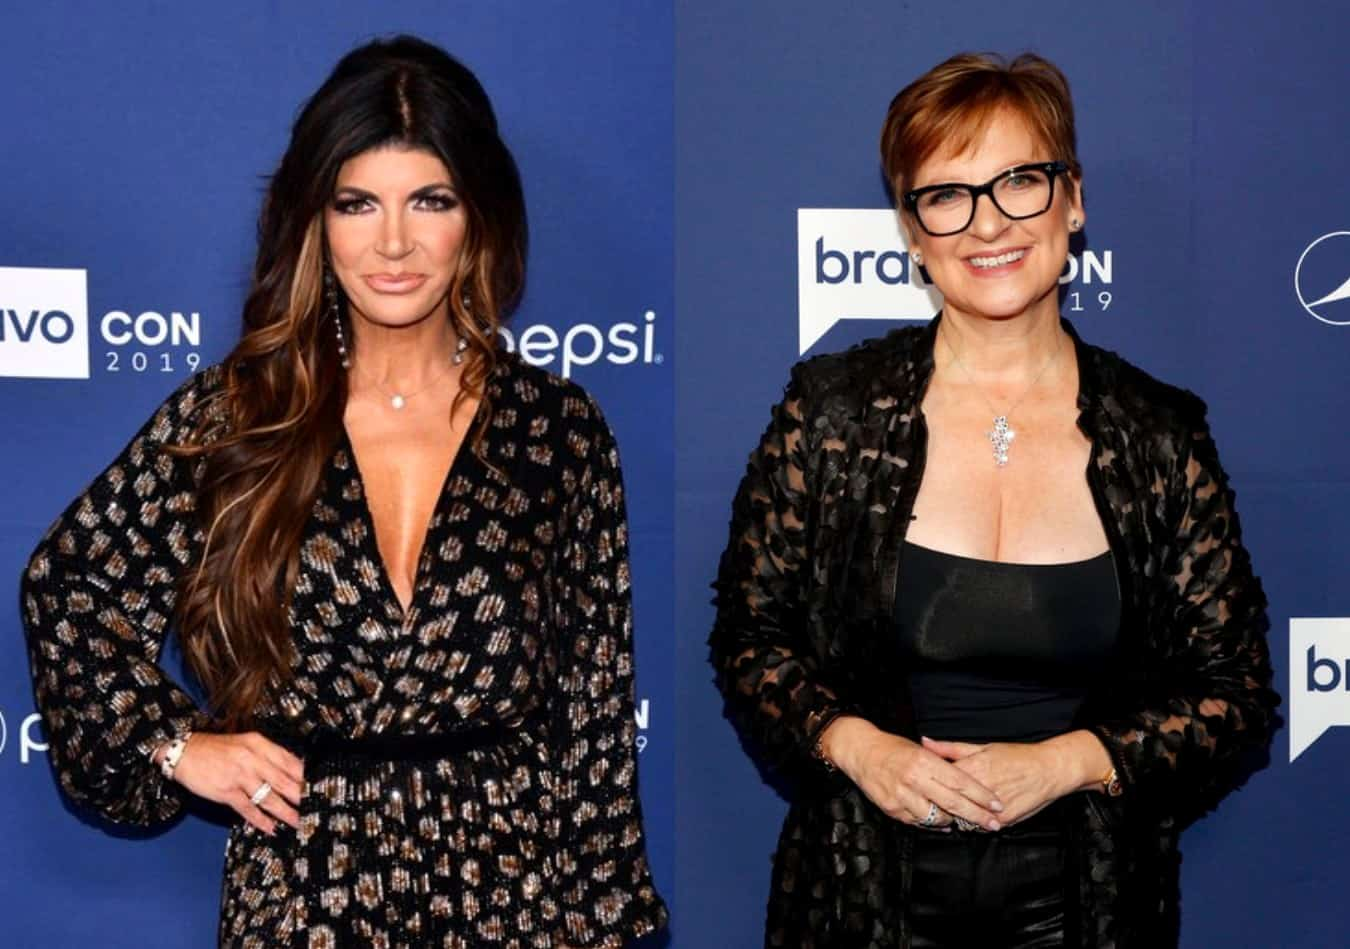 RHONJ's Teresa Giudice Explains Why She Believes Caroline Manzo is a 'Rat' and Reveals One of the People Who Turned Her and Joe Into the Feds Appeared on the Show